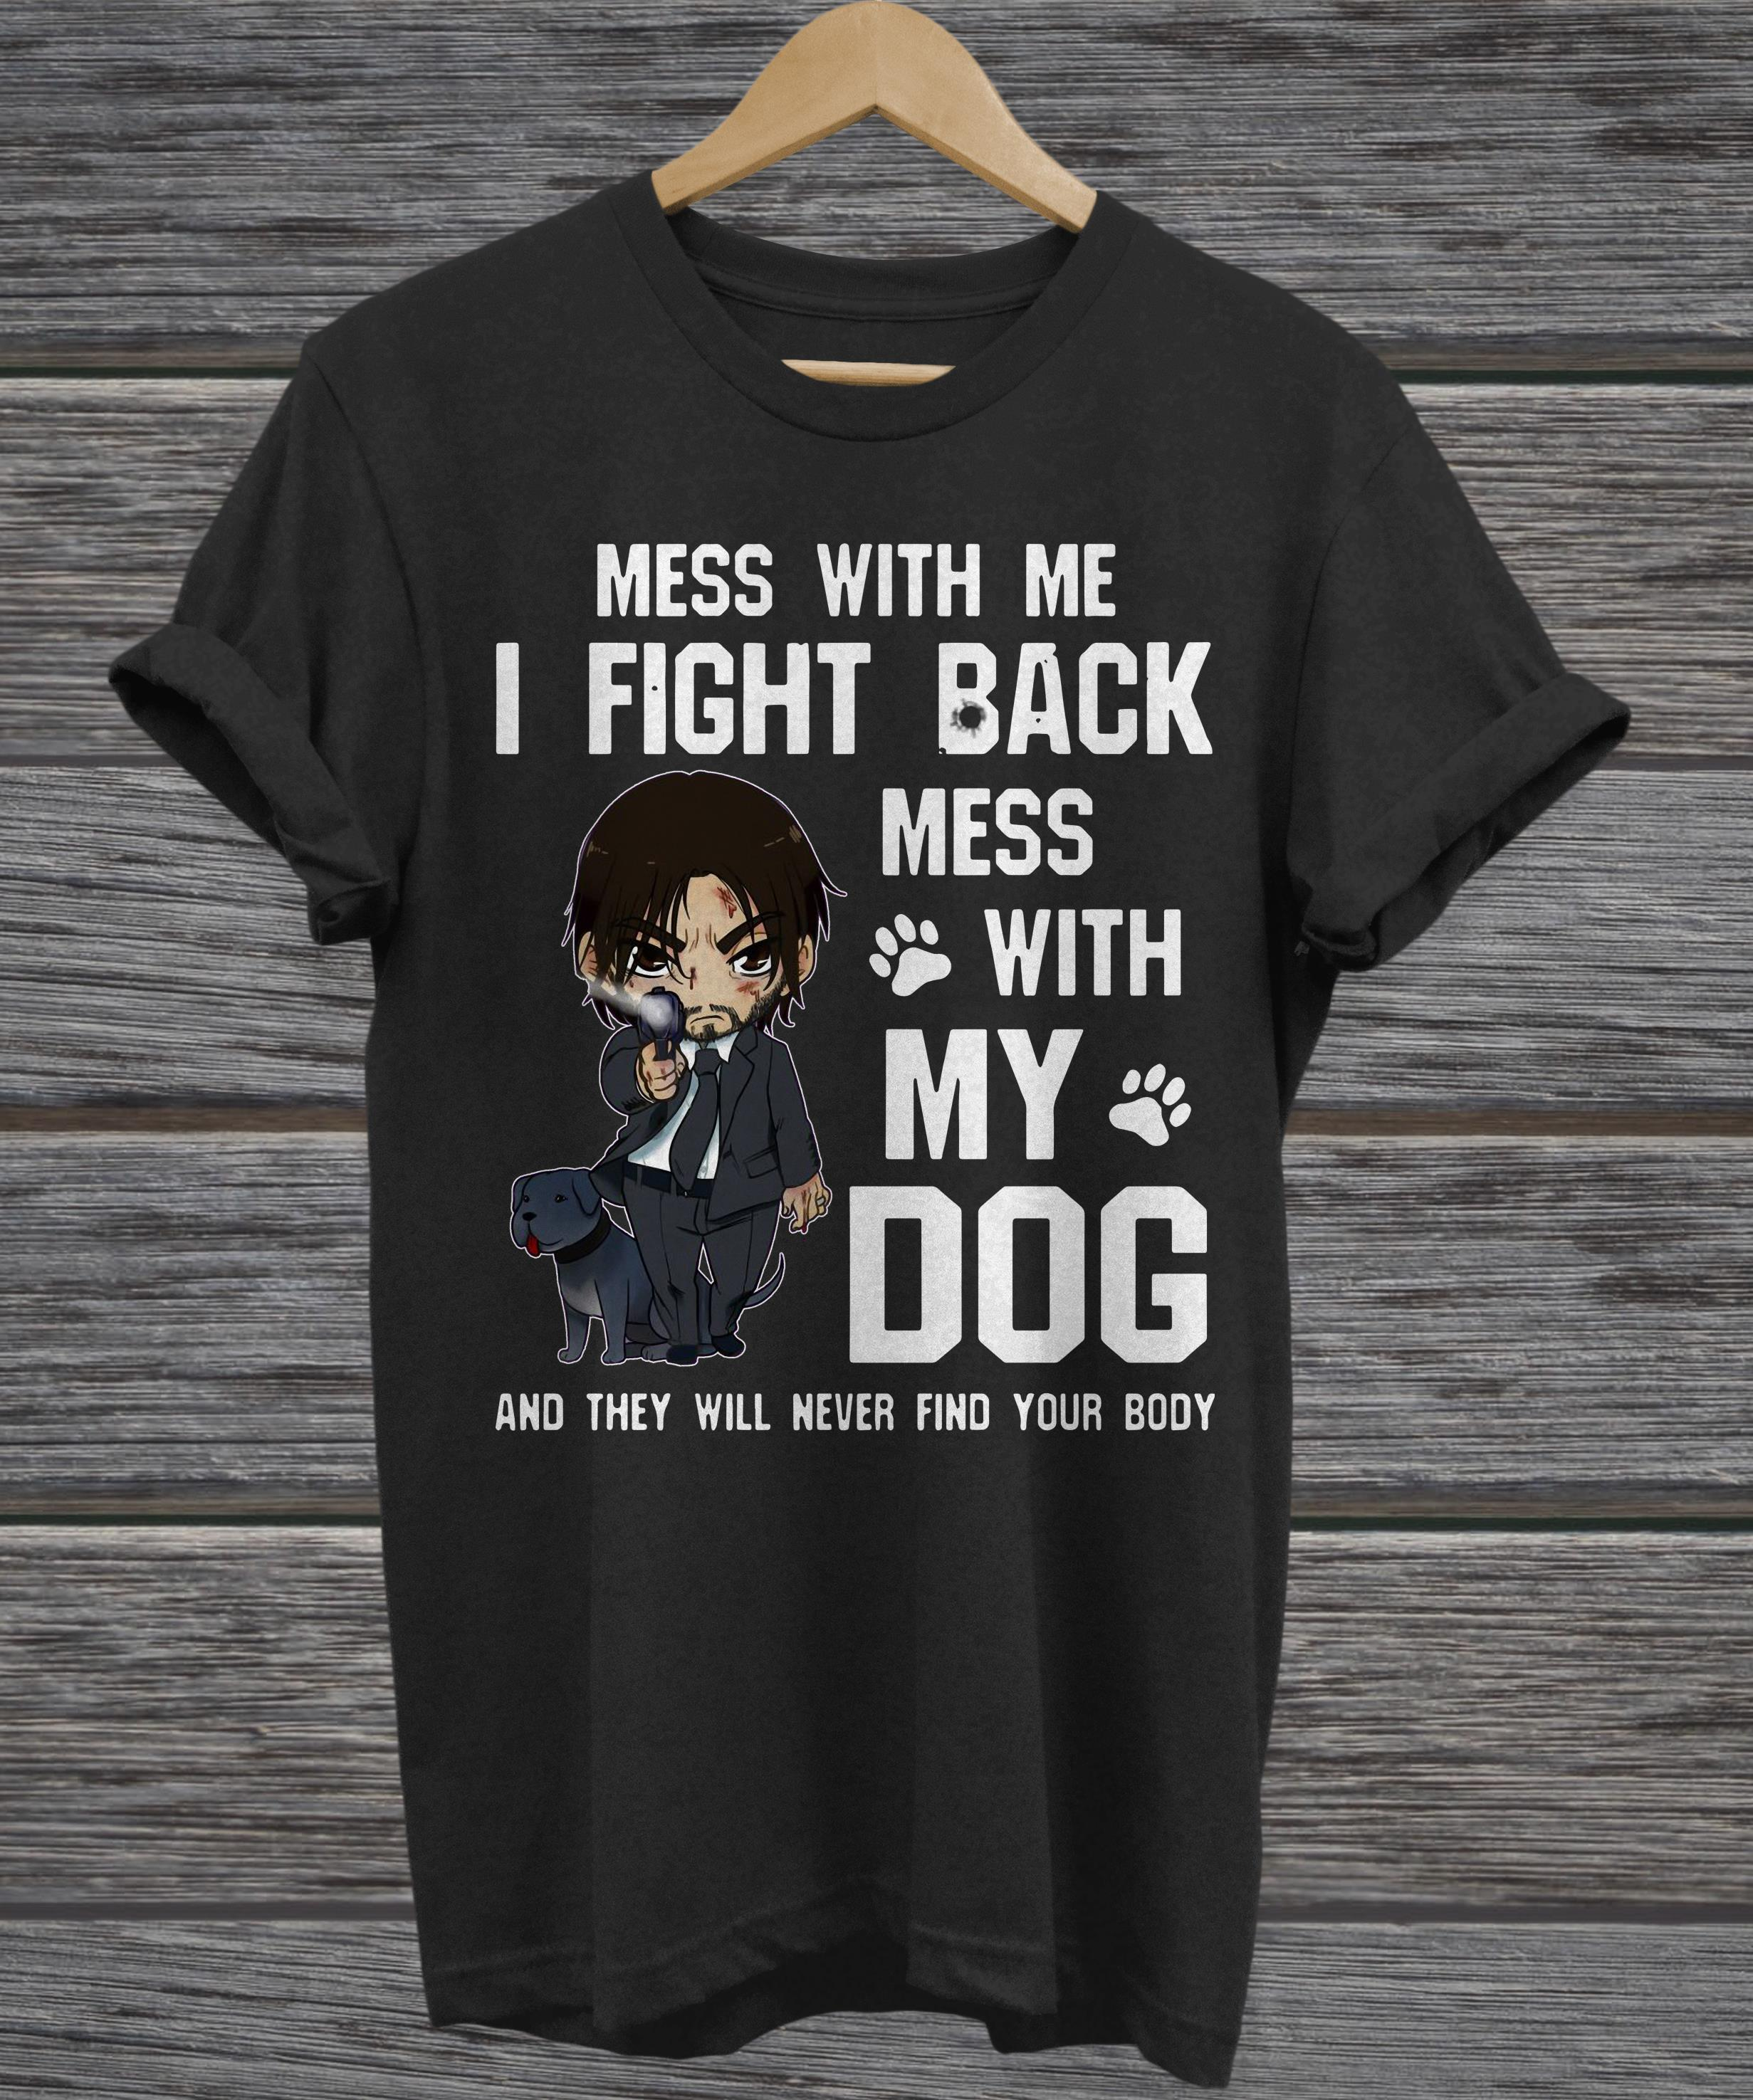 Mess with me I fight back mess with my dog v-neck